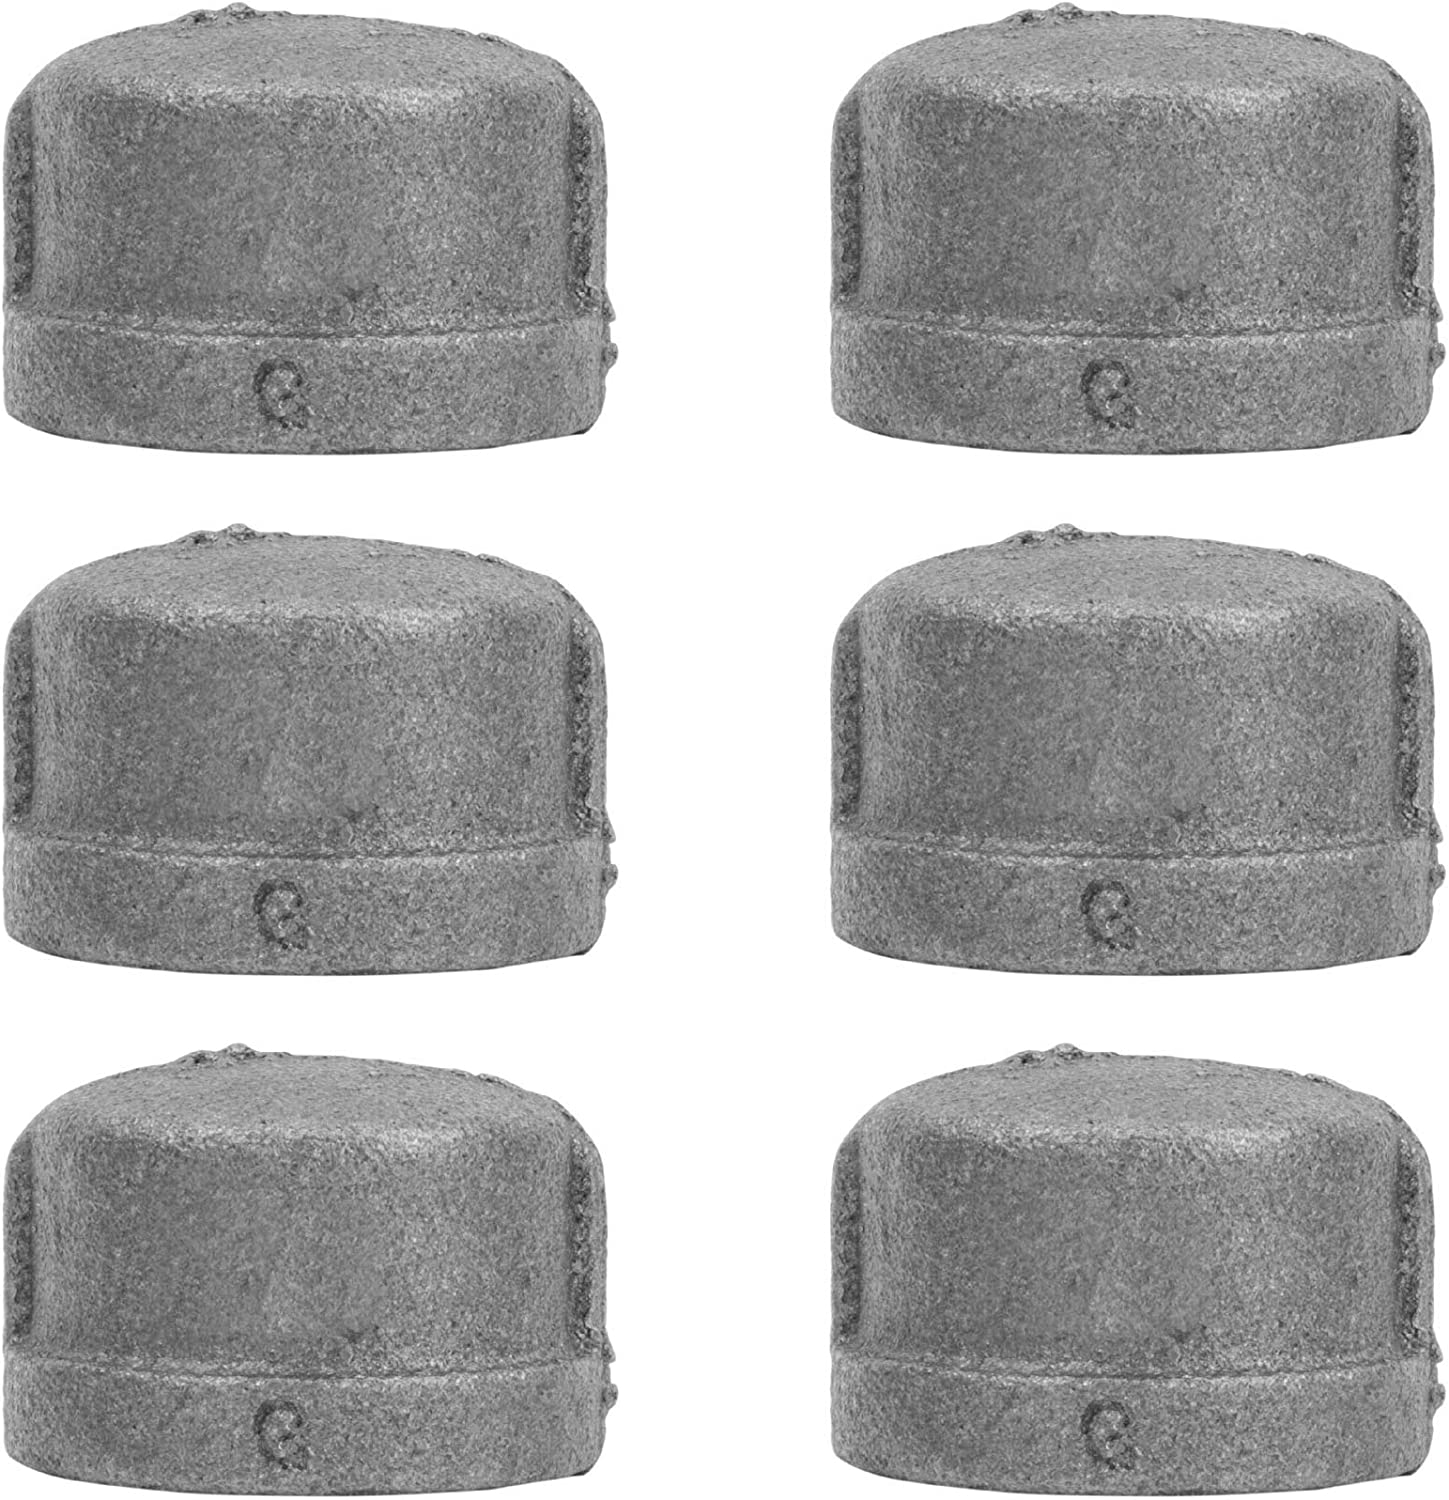 PIPE DÉCOR 1 in. Black Malleable Iron Cap, 6 Pack, for DIY Pipe Furniture Building and Regular Plumbing Applications